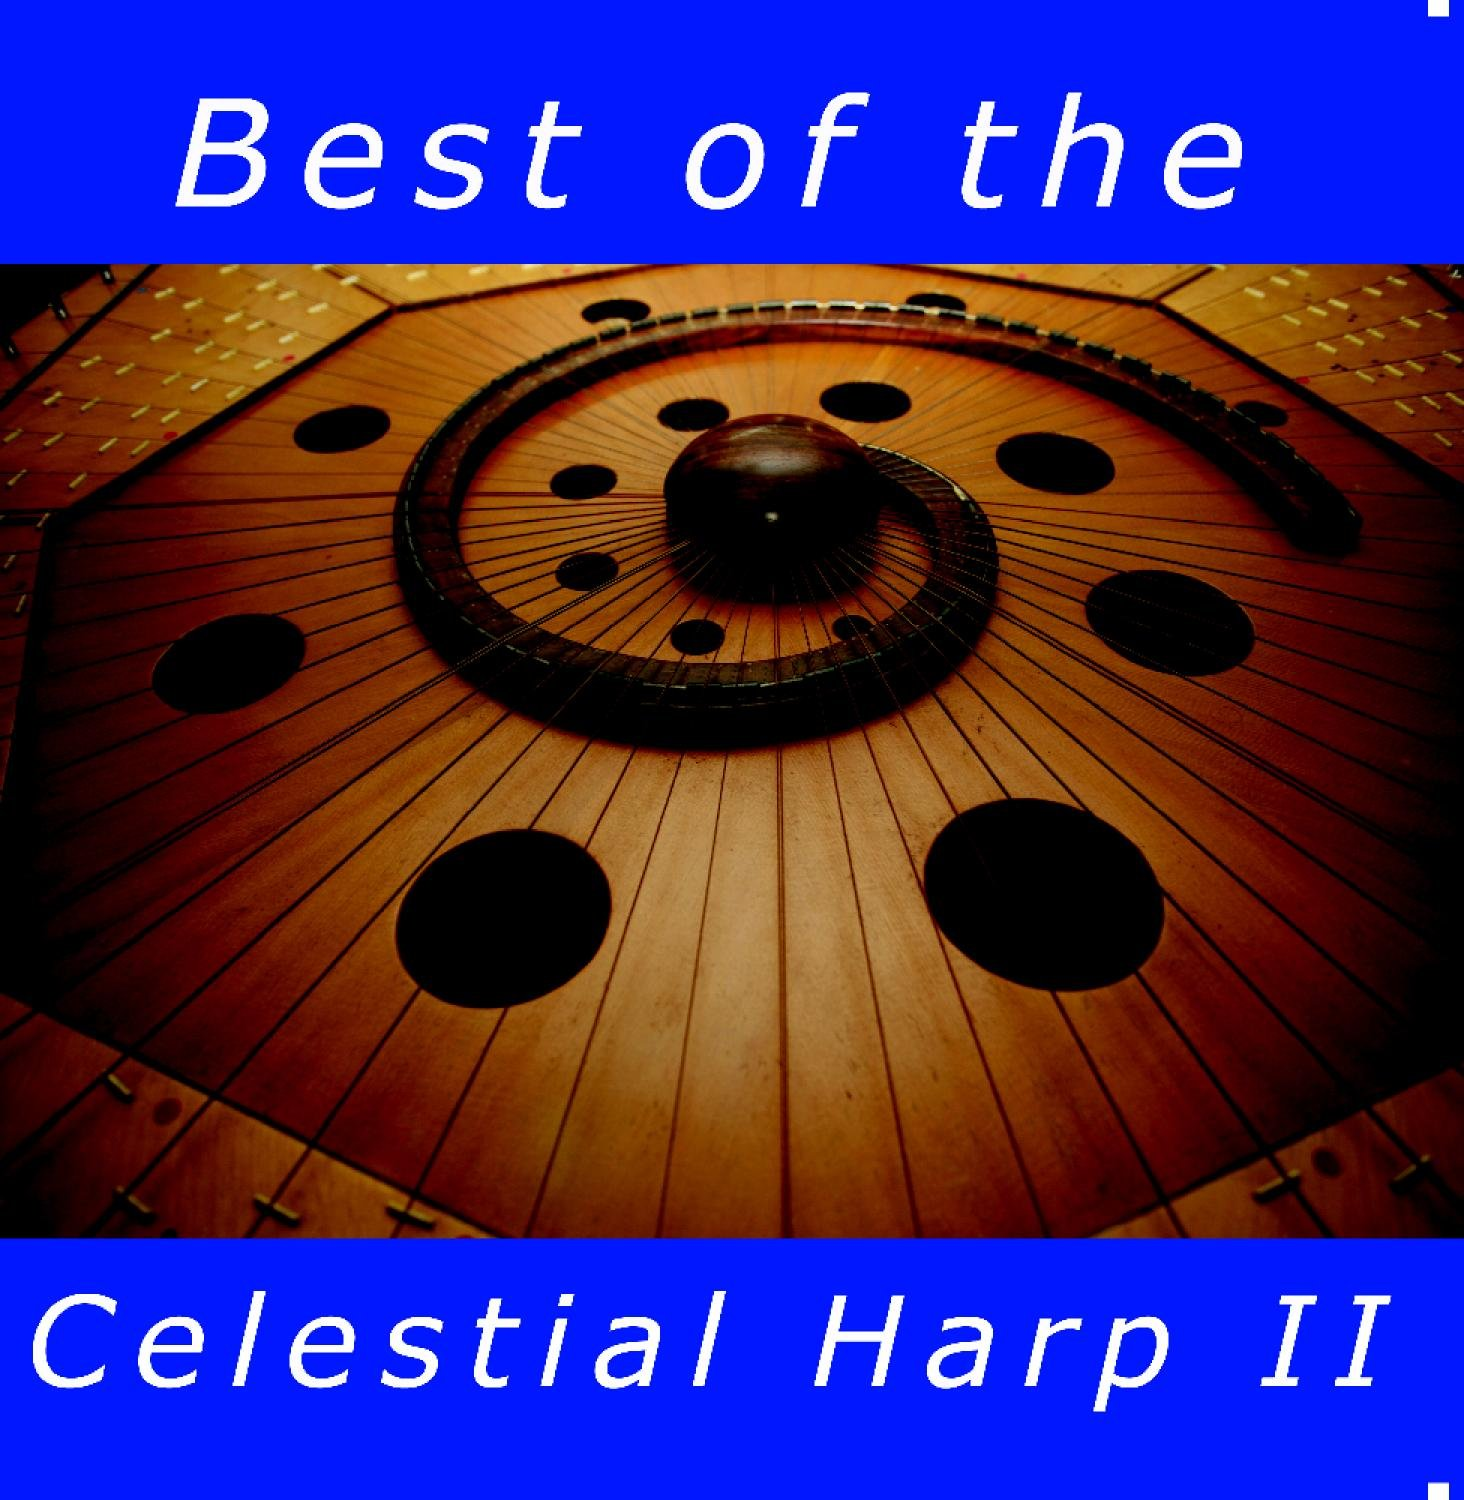 22-Best-of-Celestial-harpII- Cover